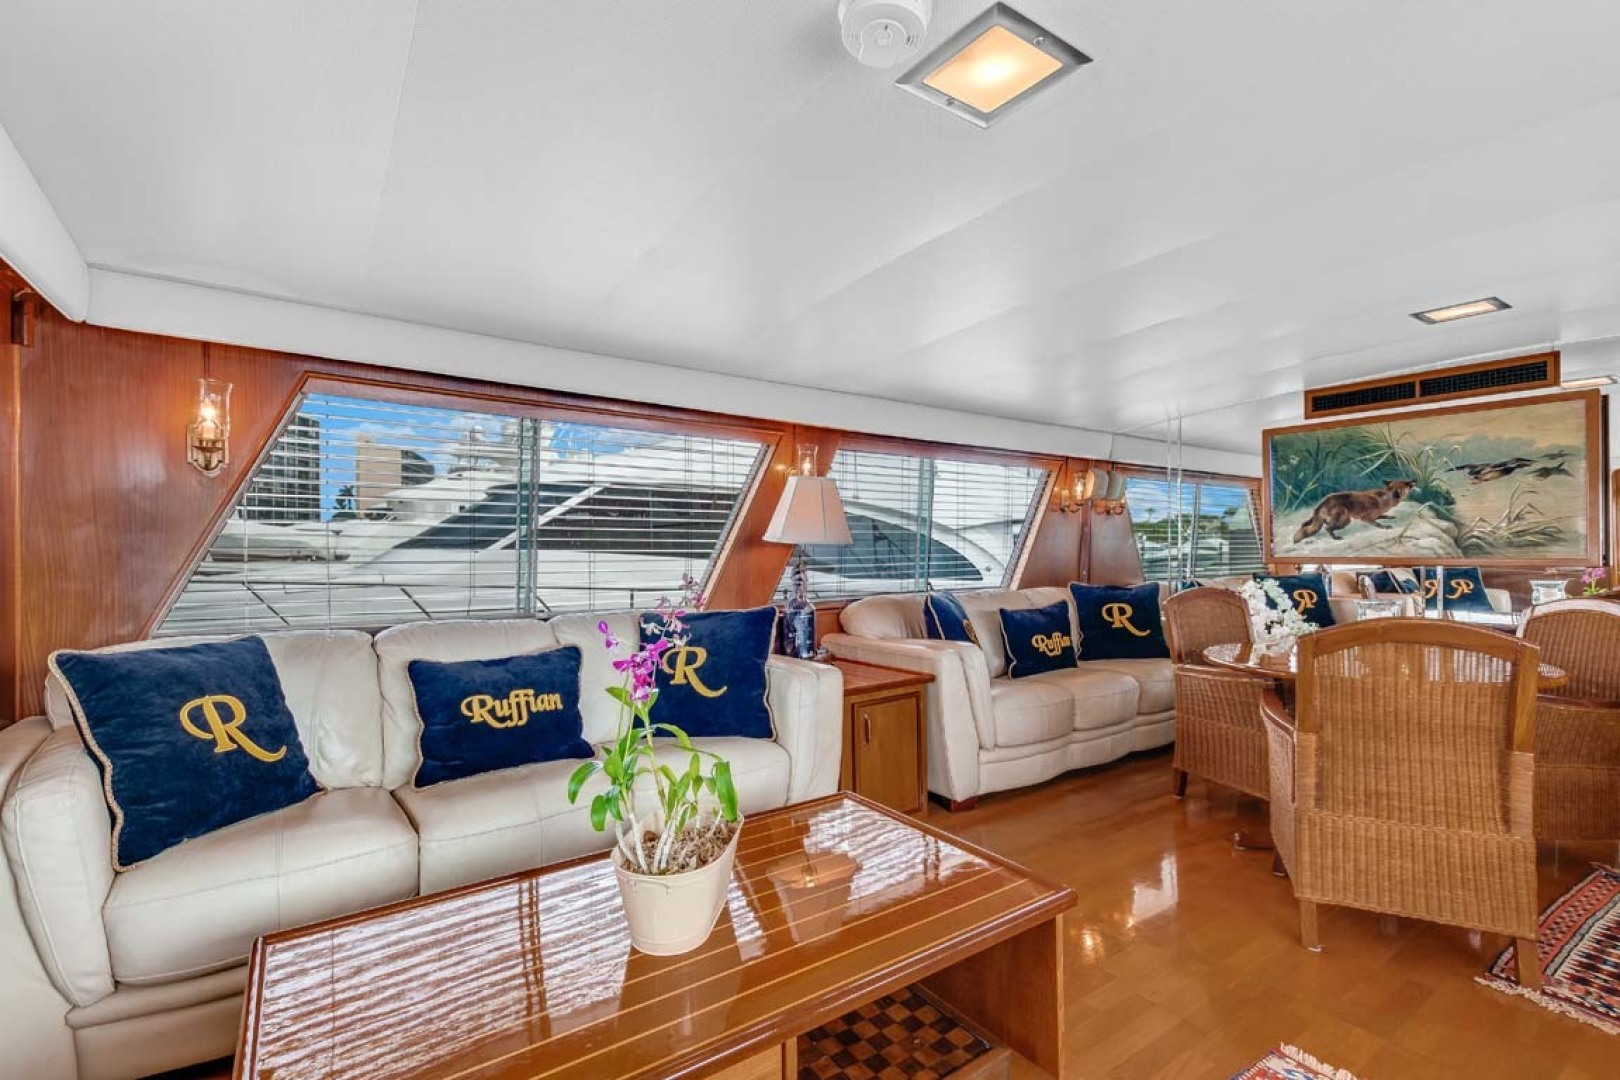 Hatteras-Motor Yacht 1985-Ruffian North Palm Beach-Florida-United States-Salon Settee-1463625 | Thumbnail